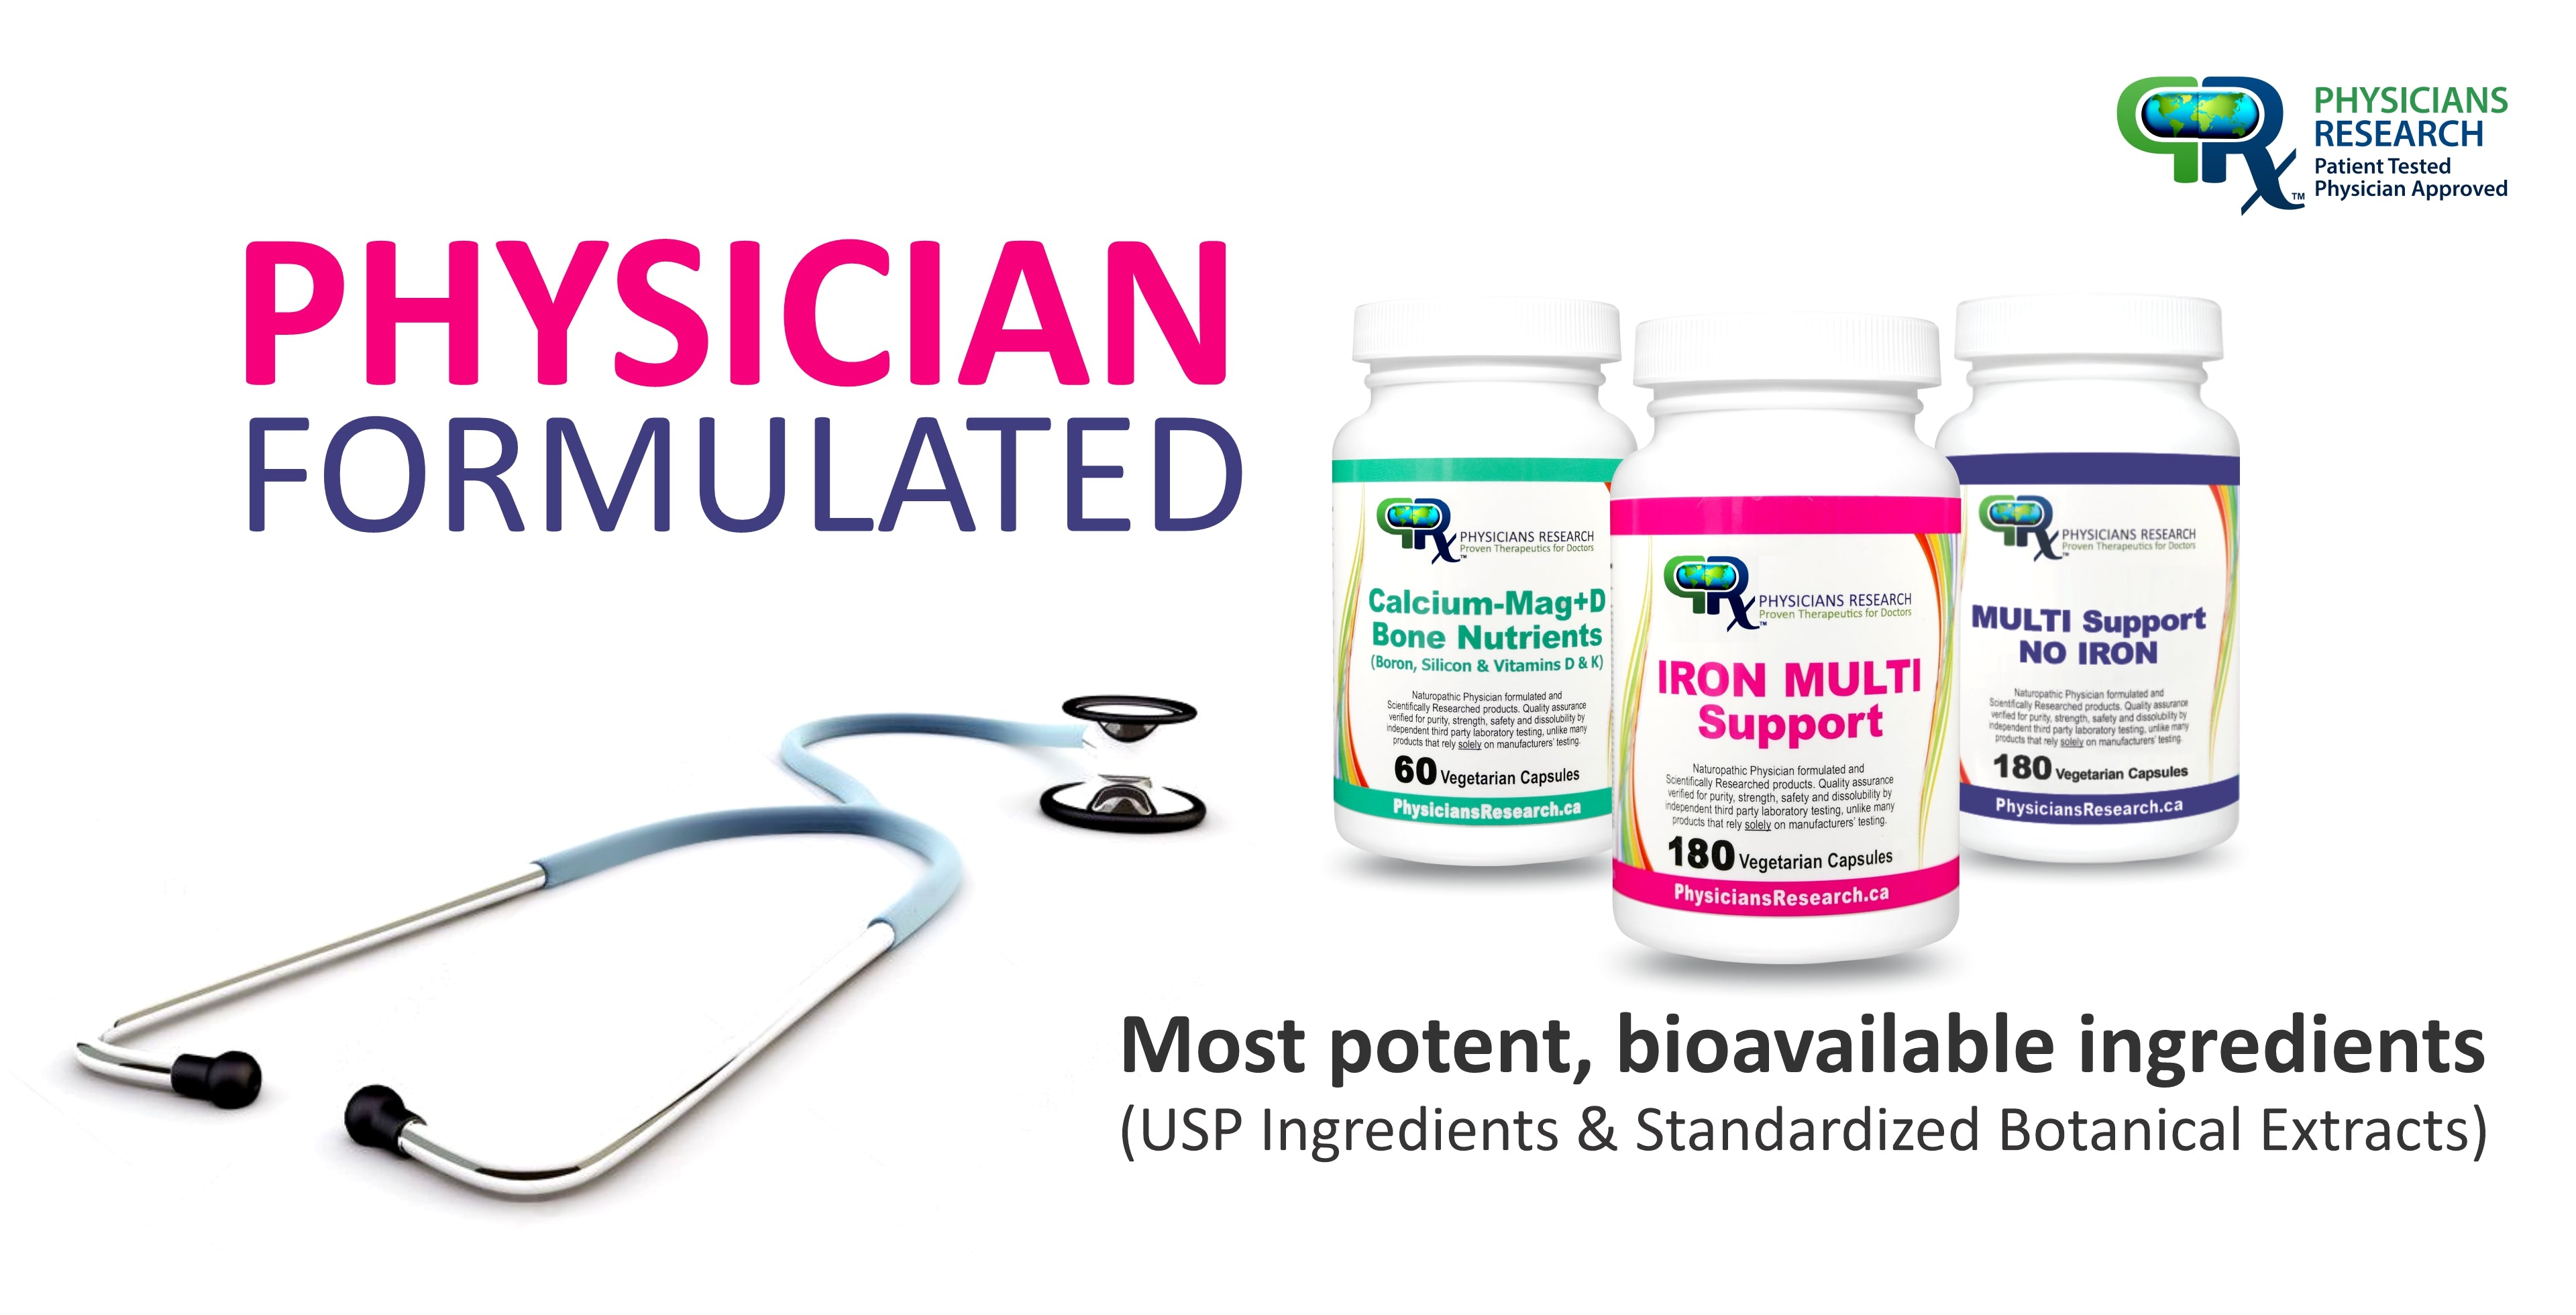 Physician Formulated, Most Potent, Bioavailable Ingredients (USP, Standardized Extracts)